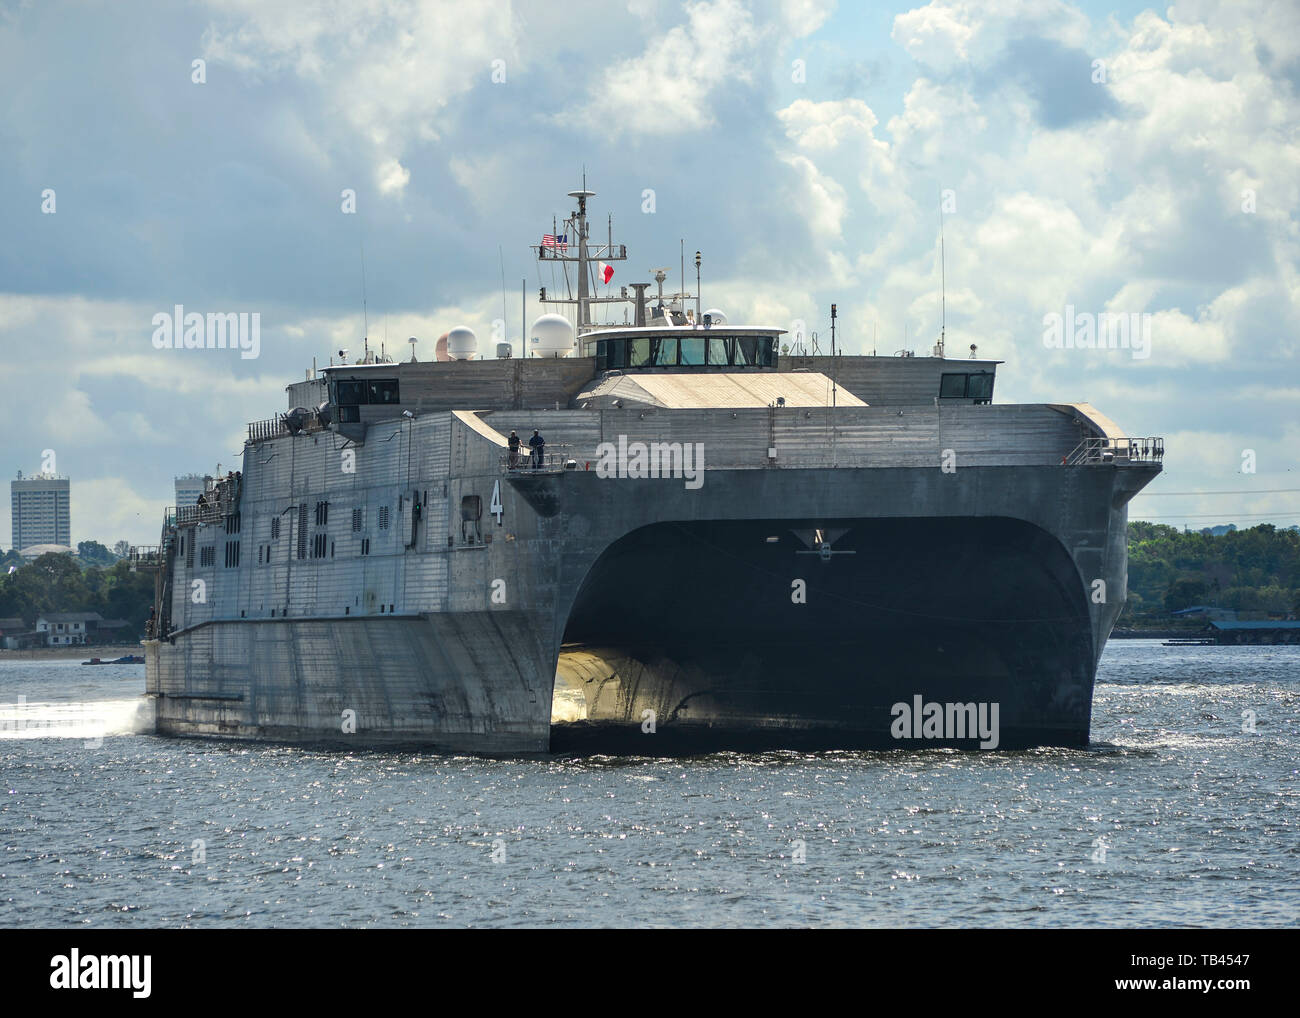 190528-N-FV739-047  SINGAPORE (May 28, 2019) The fast expeditionary transport ship USNS Fall River (T-EPF 4) pulls into the Sembawang Wharves following its last Pacific Partnership mission stop in Thailand. Pacific Partnership, now in its 14th iteration, is the largest annual multinational humanitarian assistance and disaster relief preparedness mission conducted in the Indo-Pacific. Each year the mission team works collectively with host and partner nations to enhance regional interoperability and disaster response capabilities, increase security and stability in the region, and foster new an - Stock Image